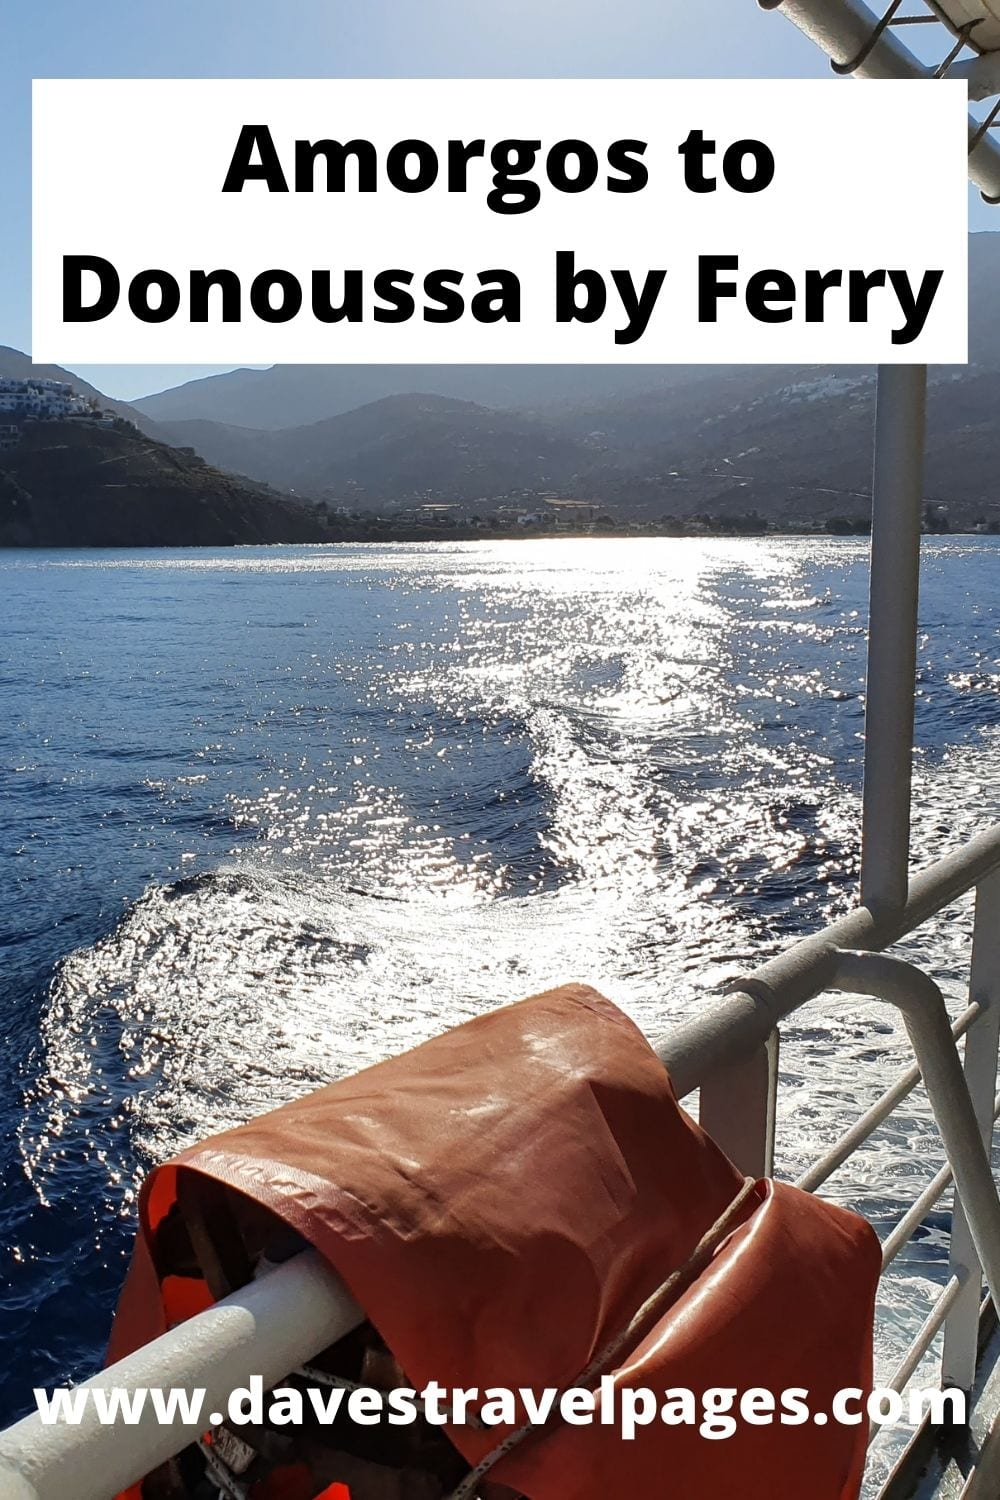 How to travel from Amorgos to Donoussa by ferry